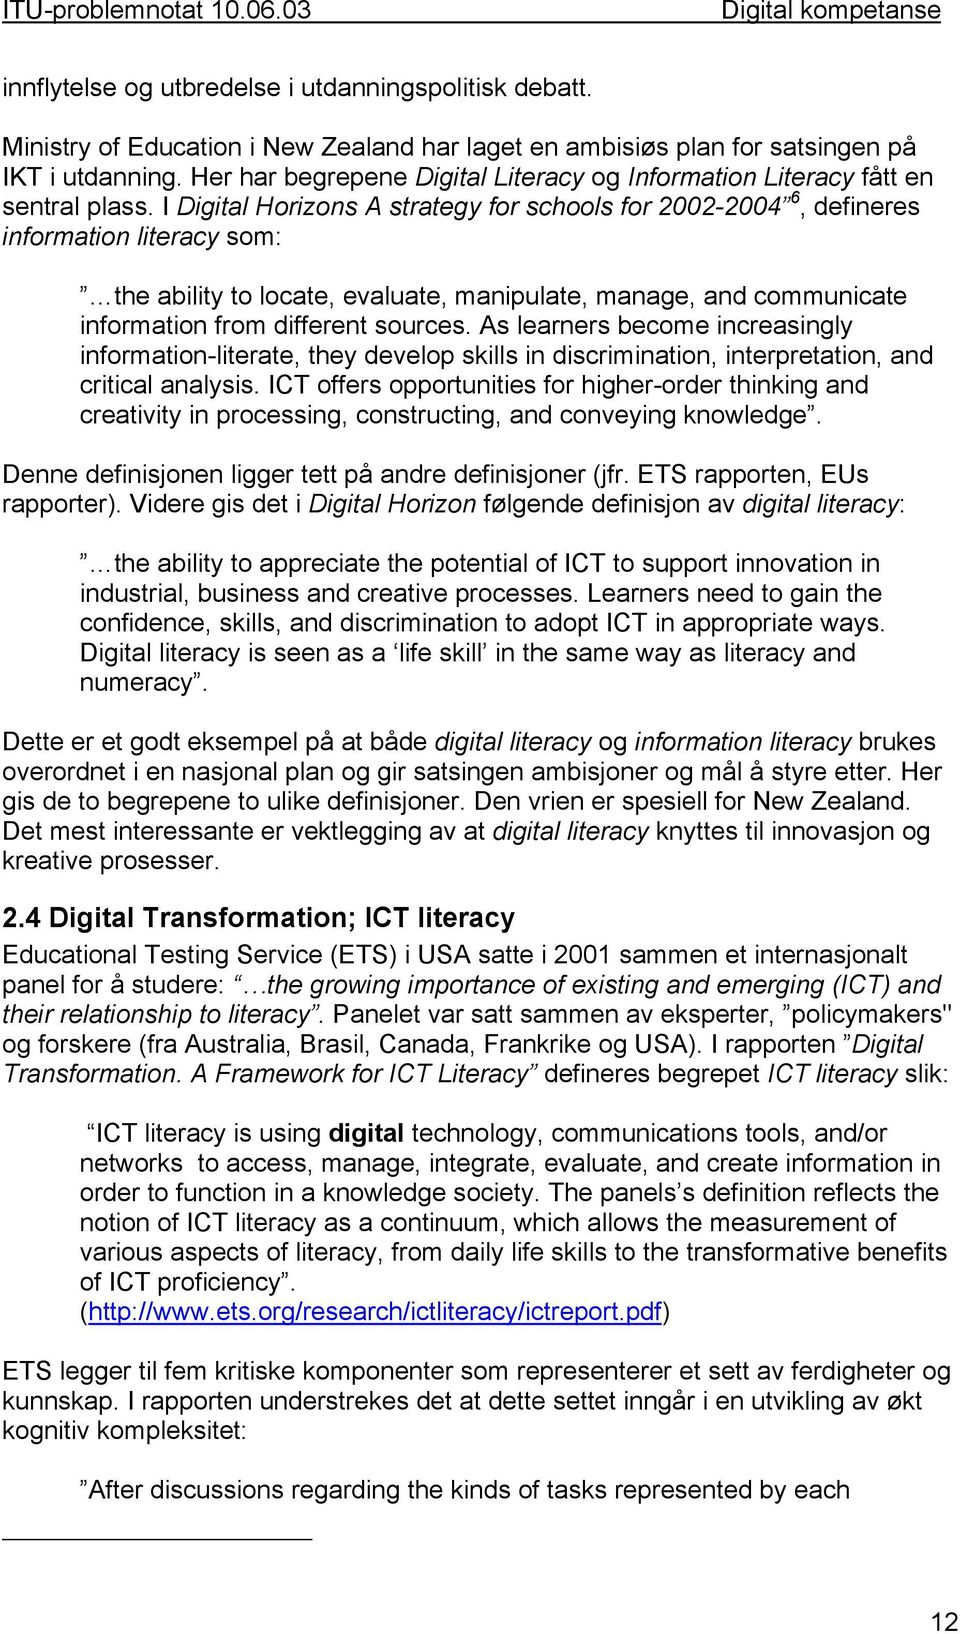 I Digital Horizons A strategy for schools for 2002-2004 6, defineres information literacy som: the ability to locate, evaluate, manipulate, manage, and communicate information from different sources.